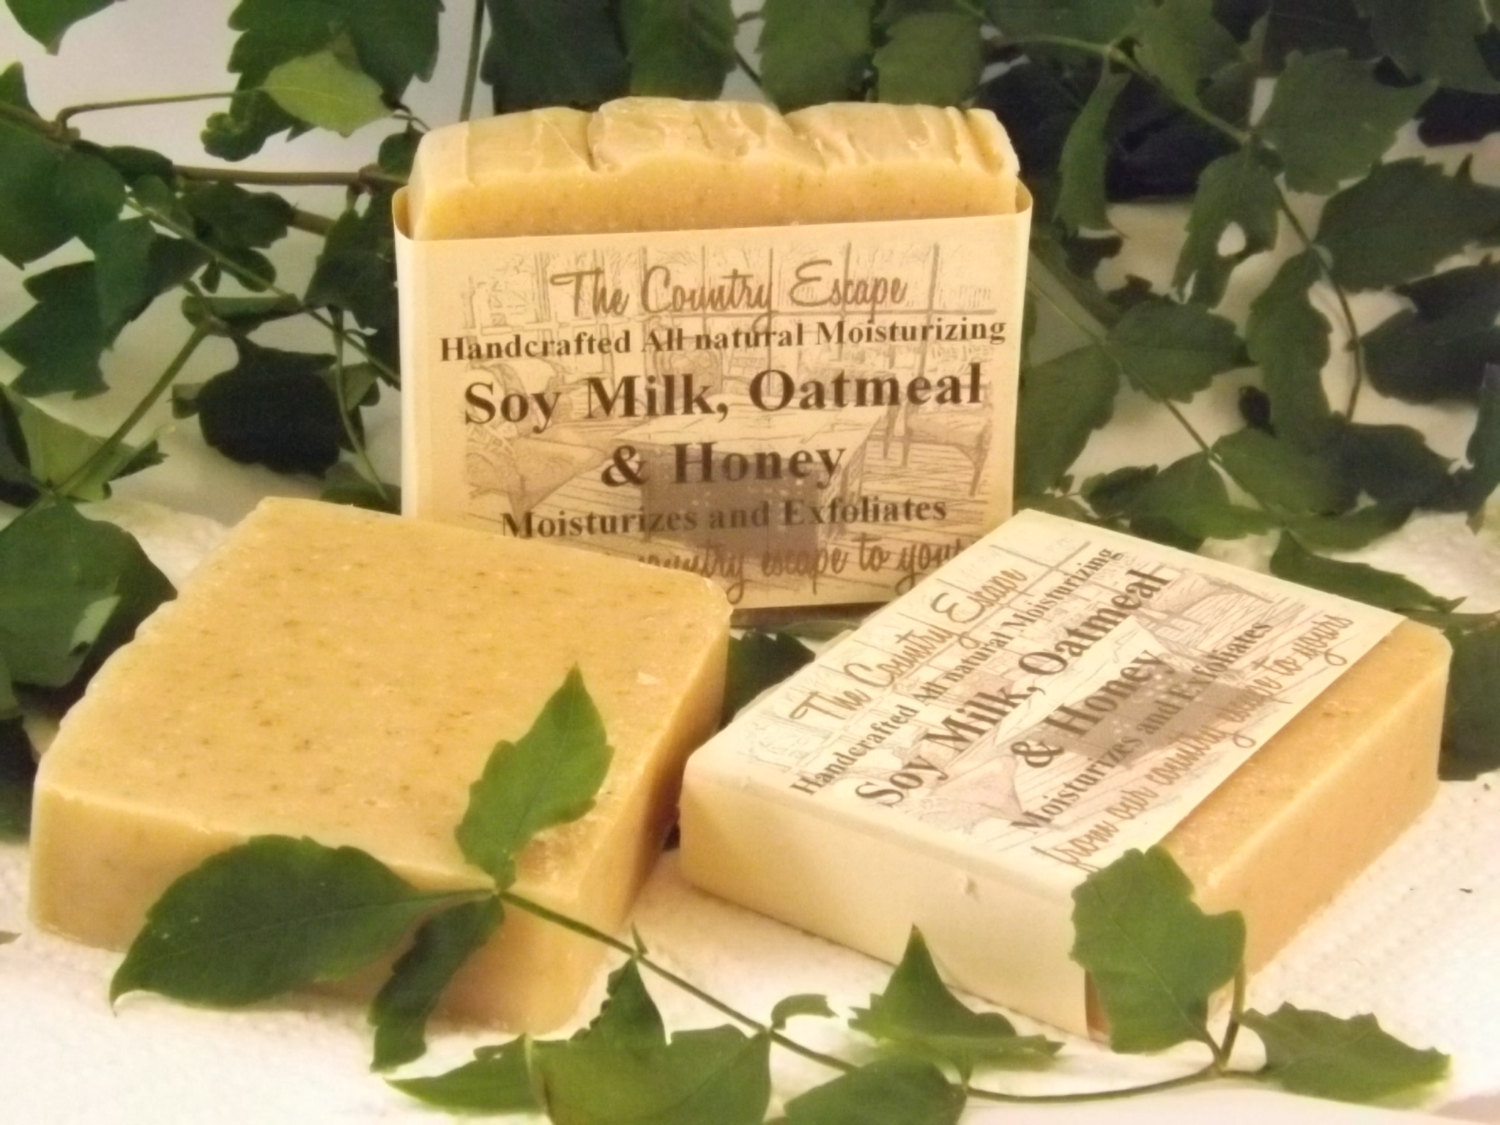 soy milke, oatmeal, and honey soap